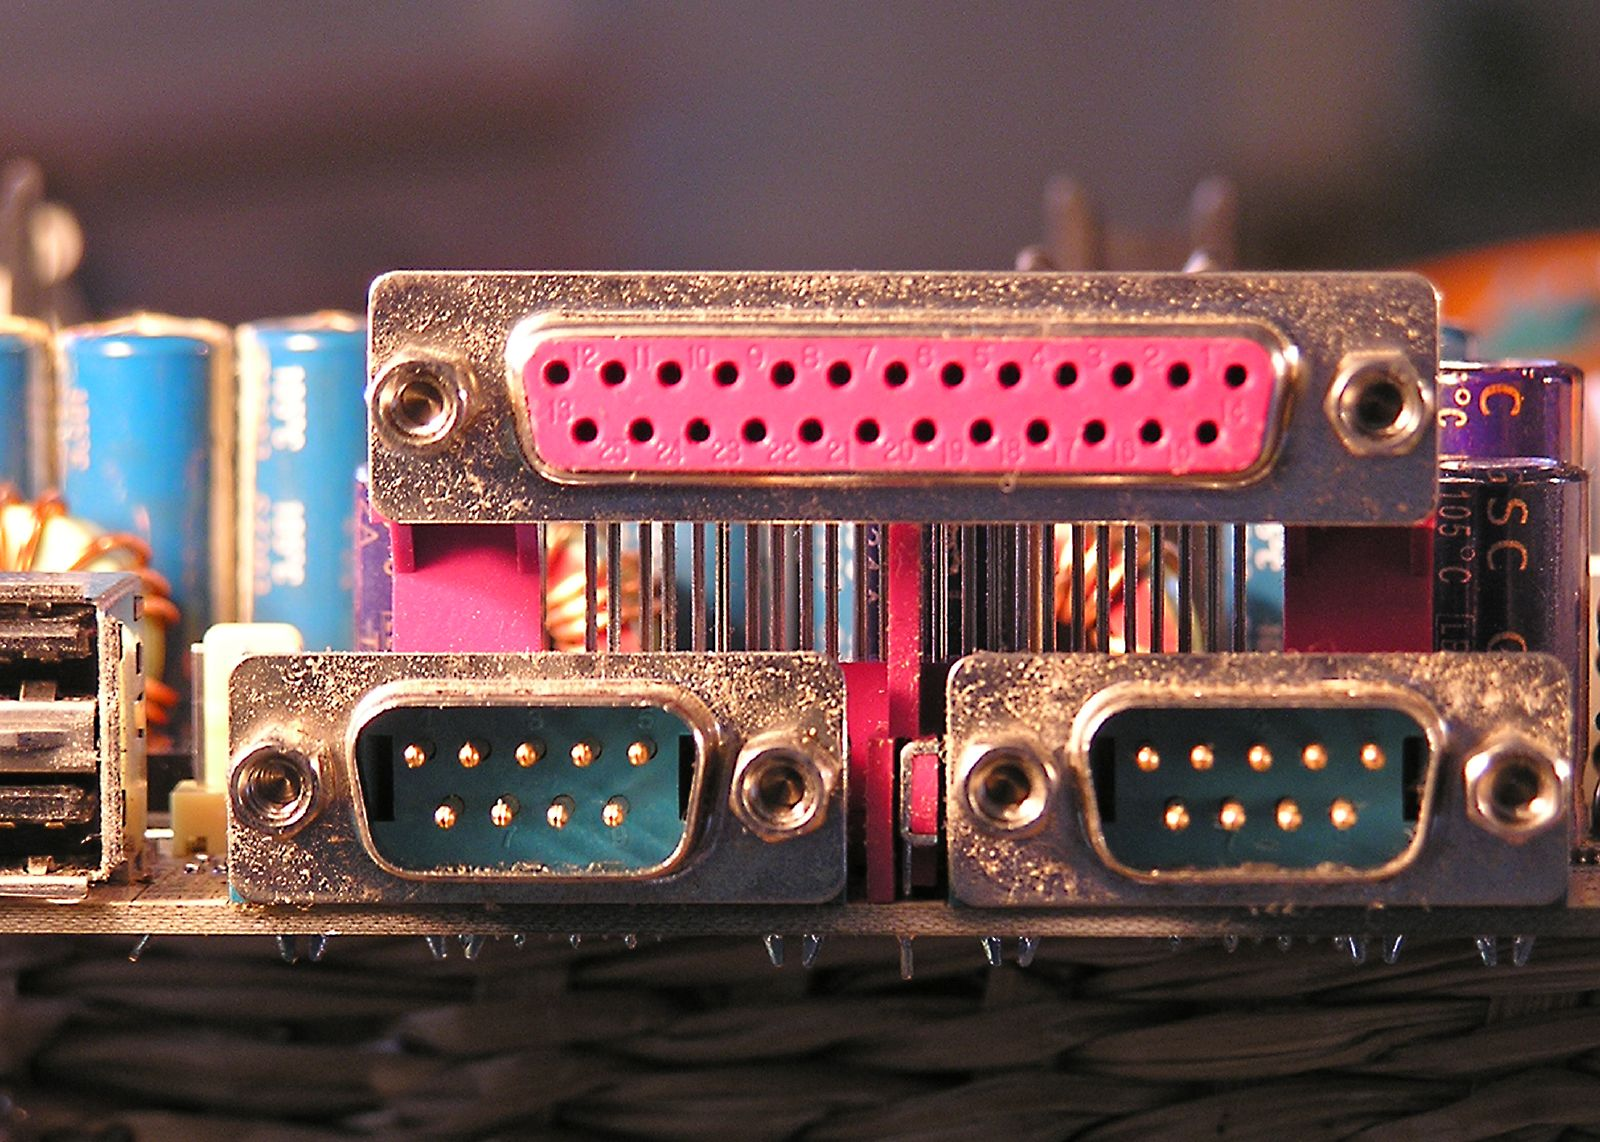 Sneaky Hackers Use Intel Management Tools To Bypass Windows Firewall With The Pinout Wiring Upthe Connector Is Trivial Just Net Enlarge Physical